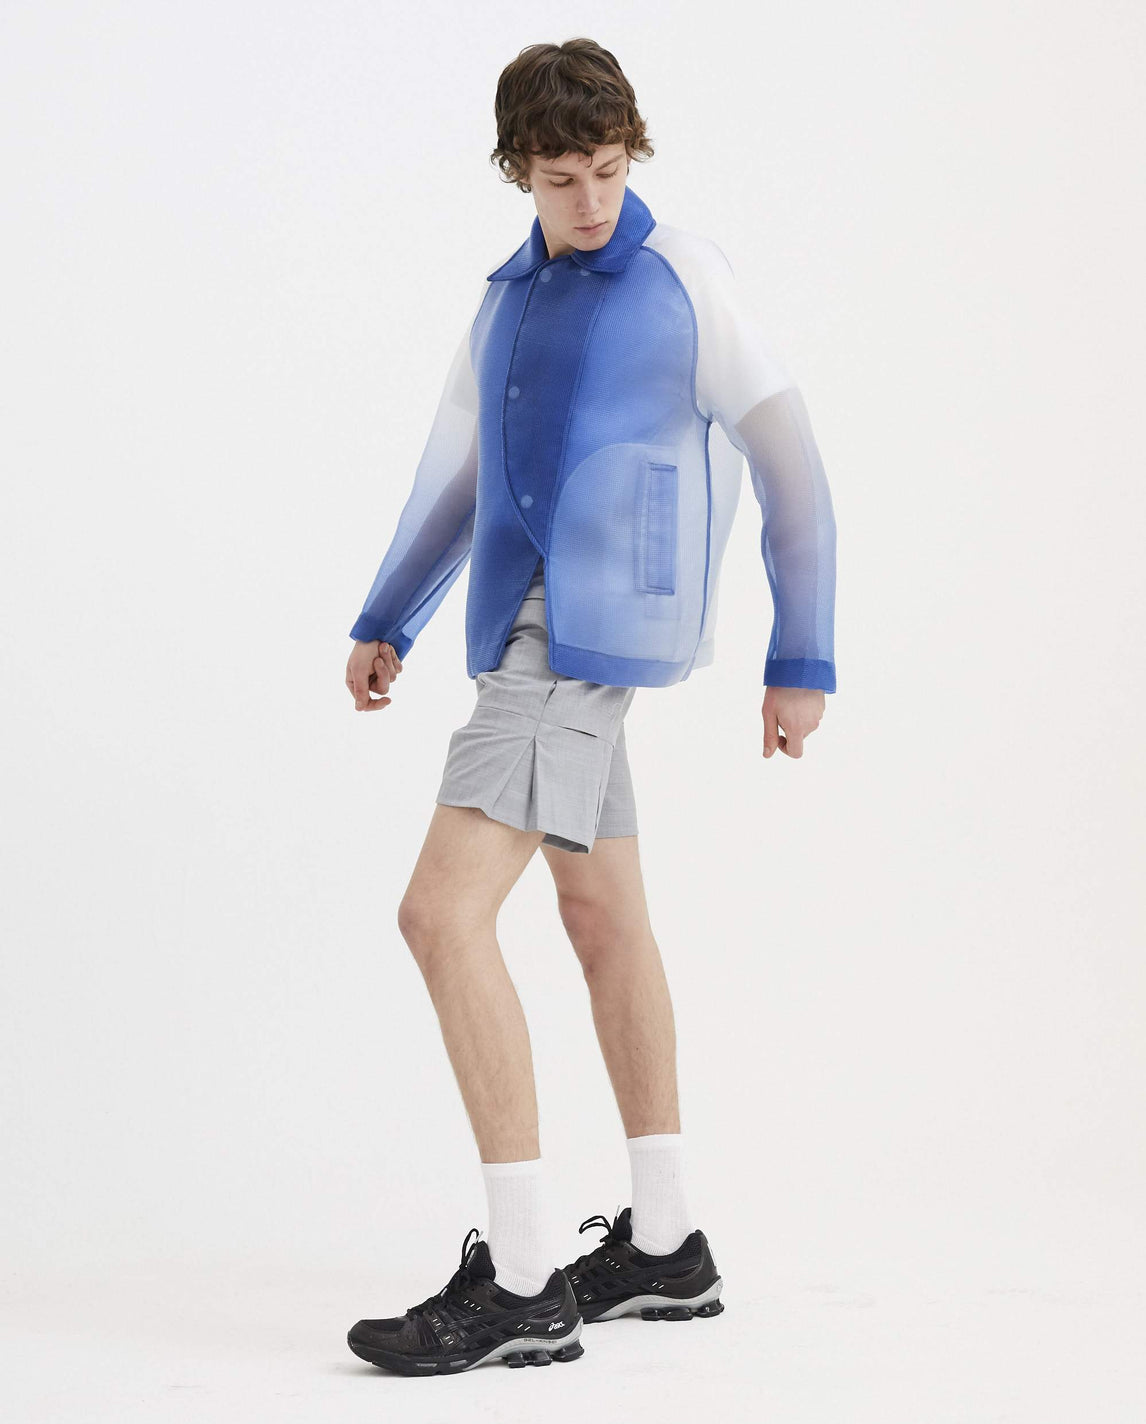 Jacket - Blue and White MENS CORNERSTONE